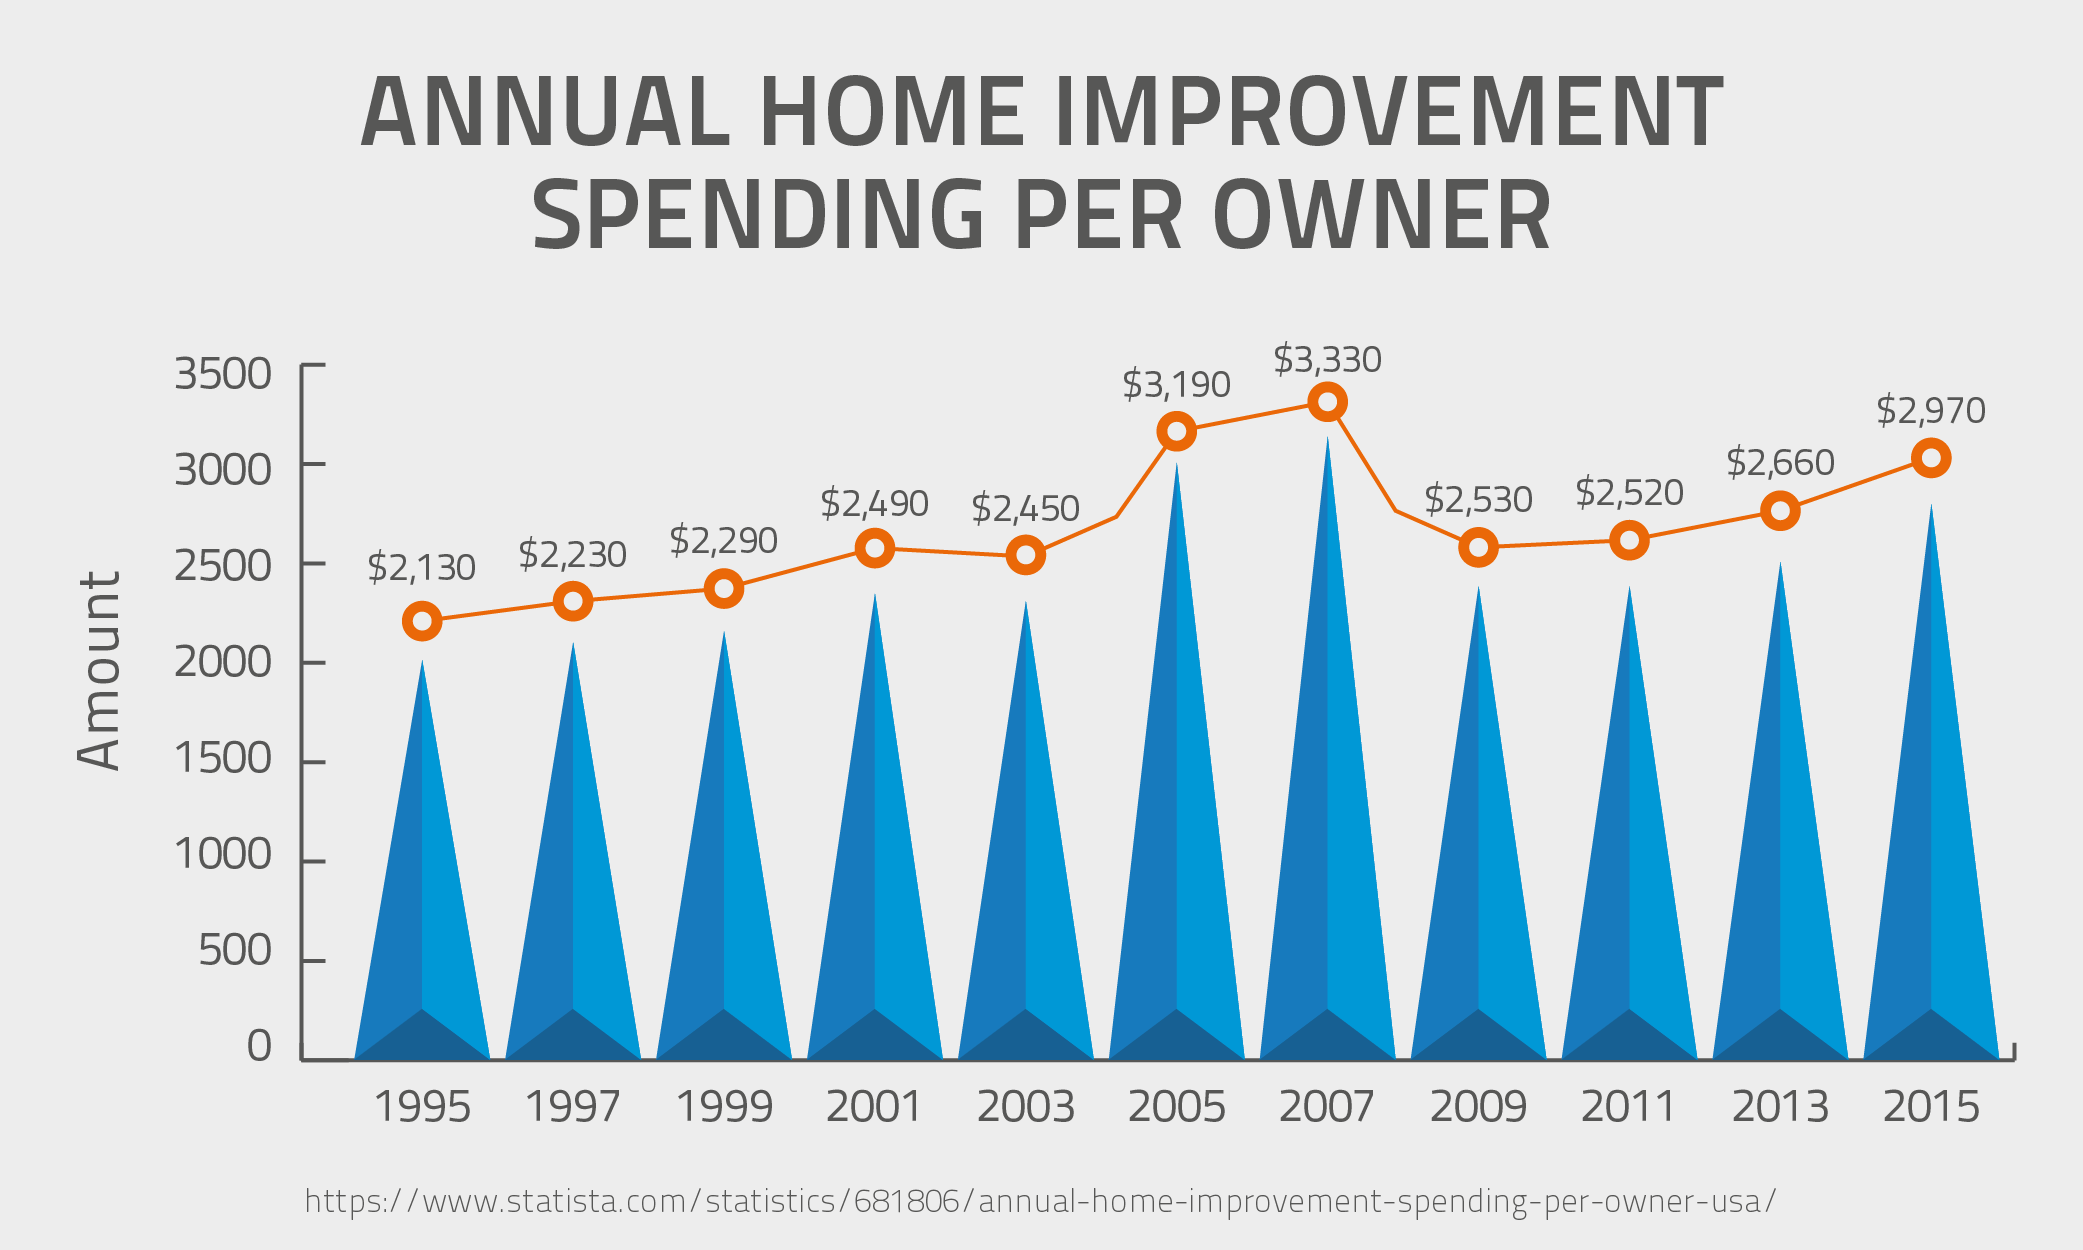 Annual Home Improvement Spending Per Owner